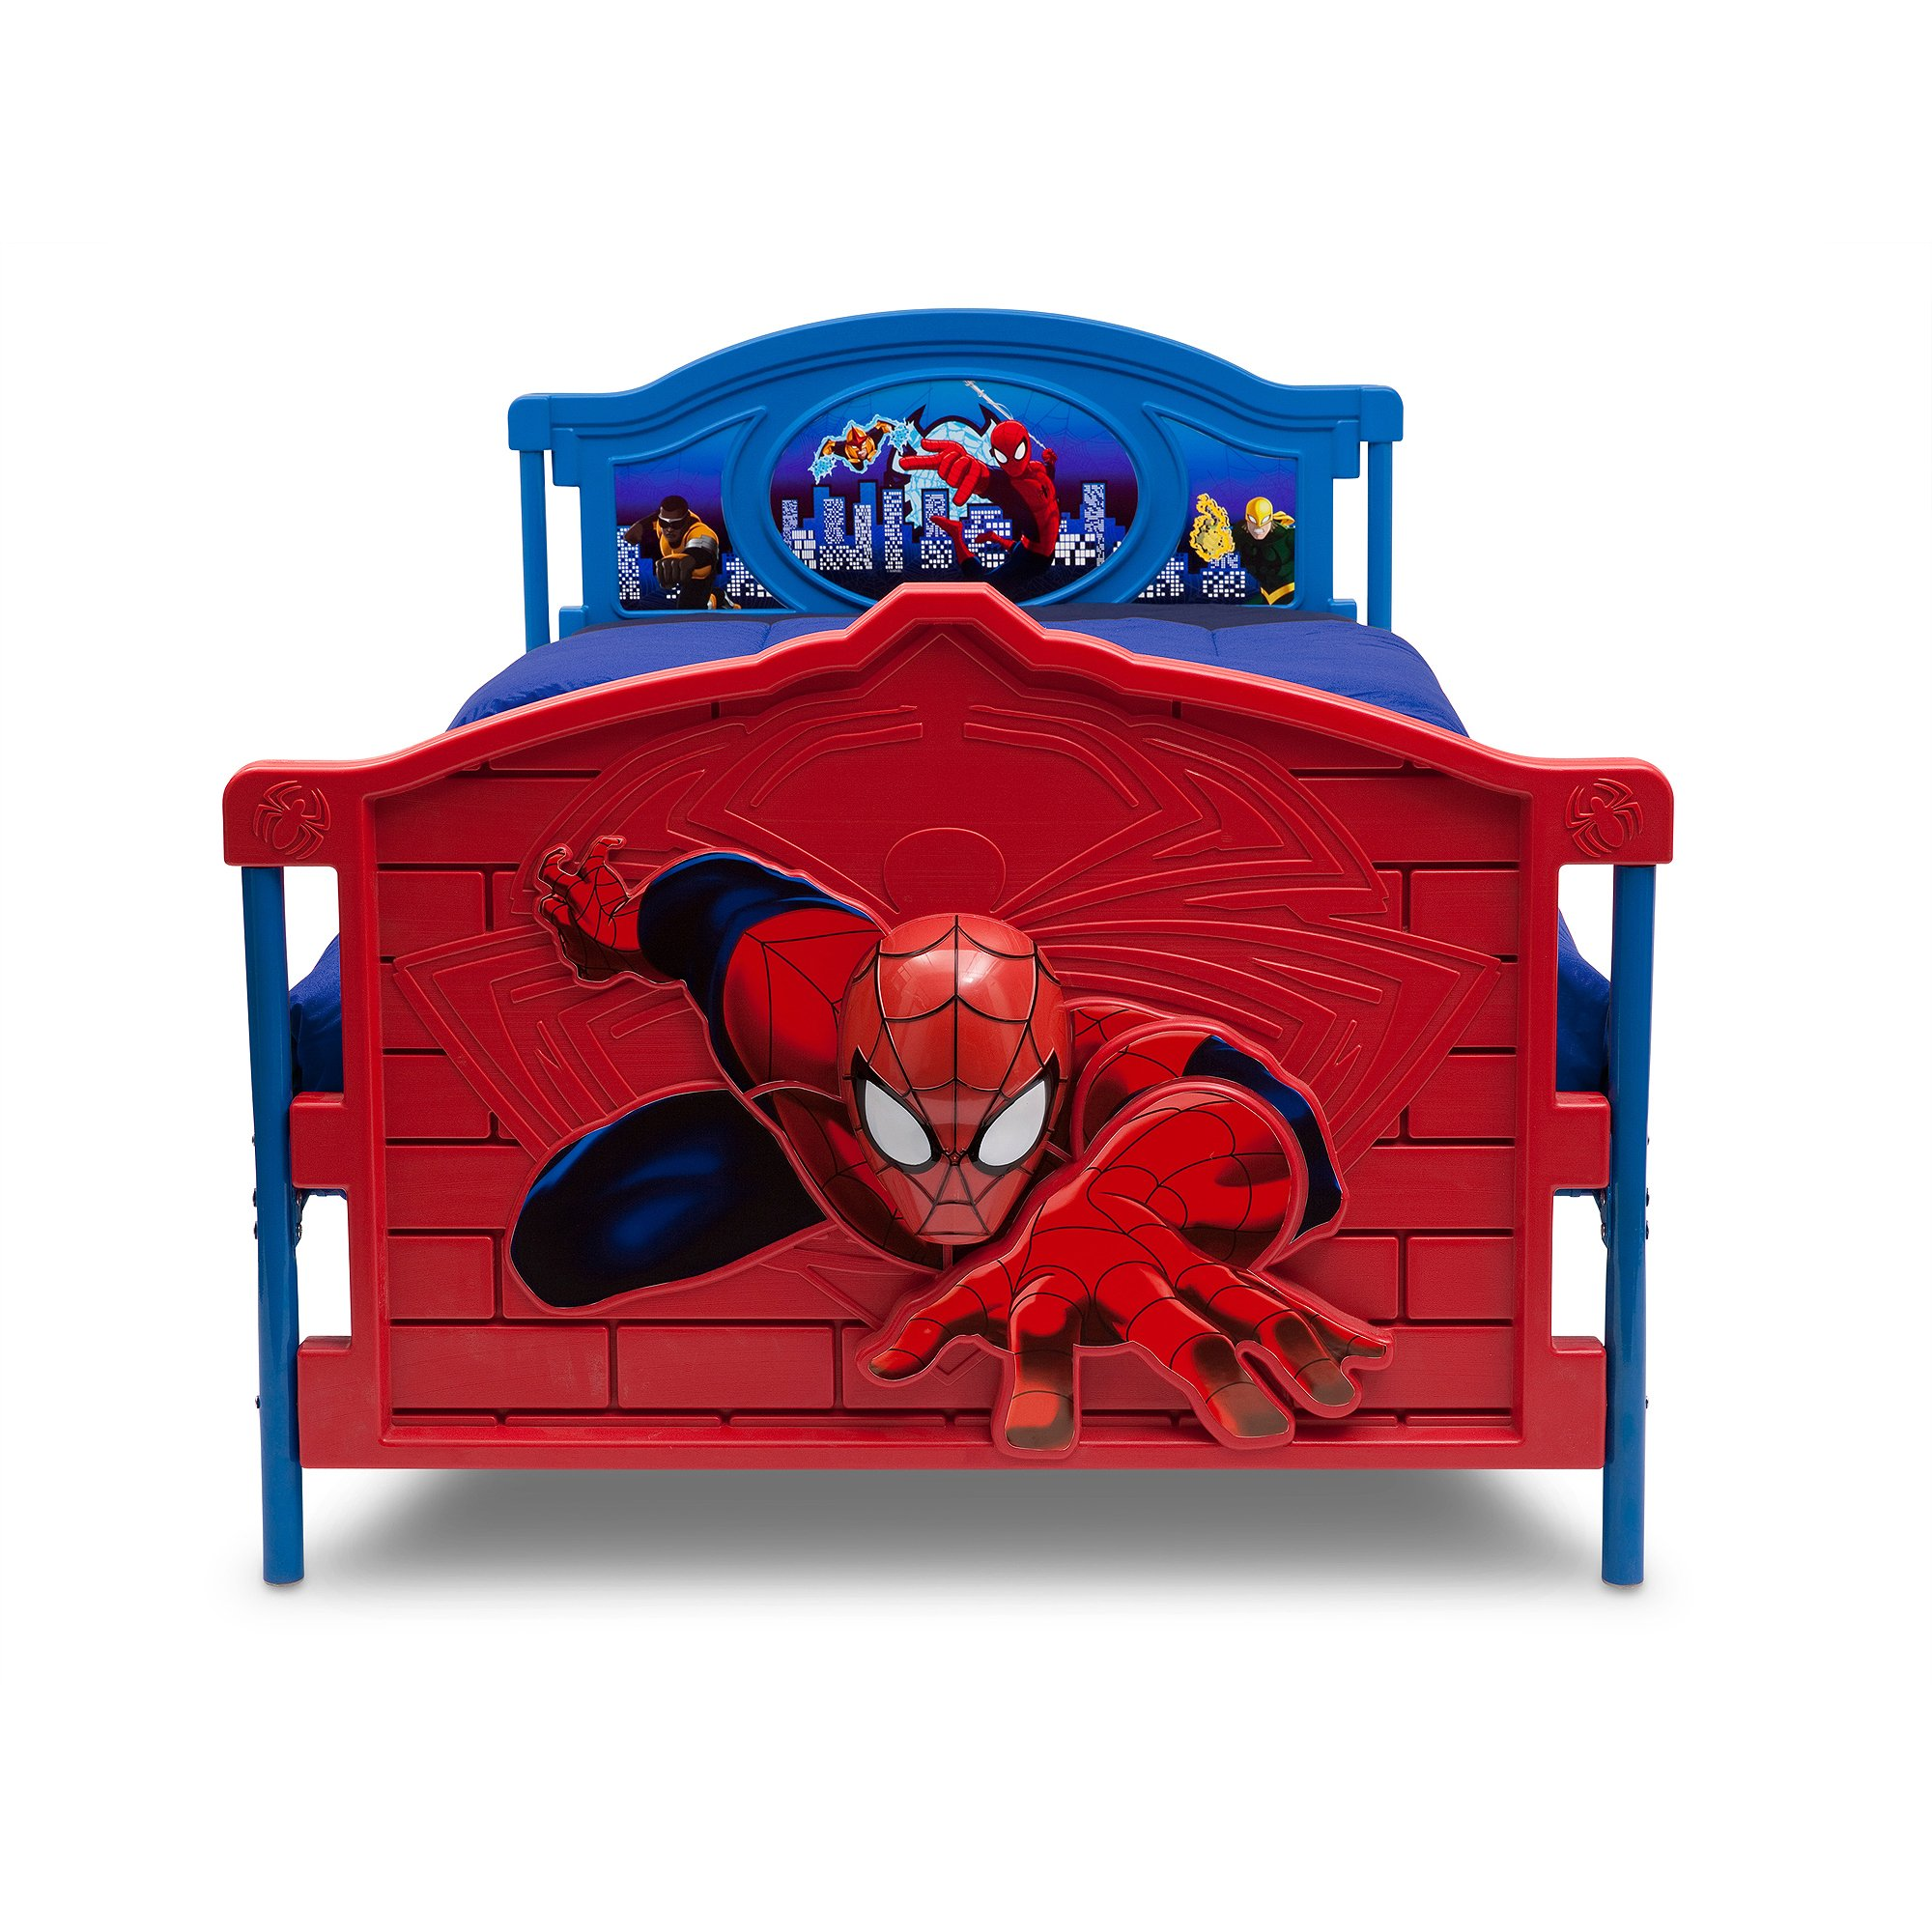 Spider-Man 3D Twin Bed, Your Kid's Dream Place, Includes removable Guardrails, Very Sturdy, Easy to Assemble, Perfect Present for your Kid, reversible Footboard, Bedroom Furniture